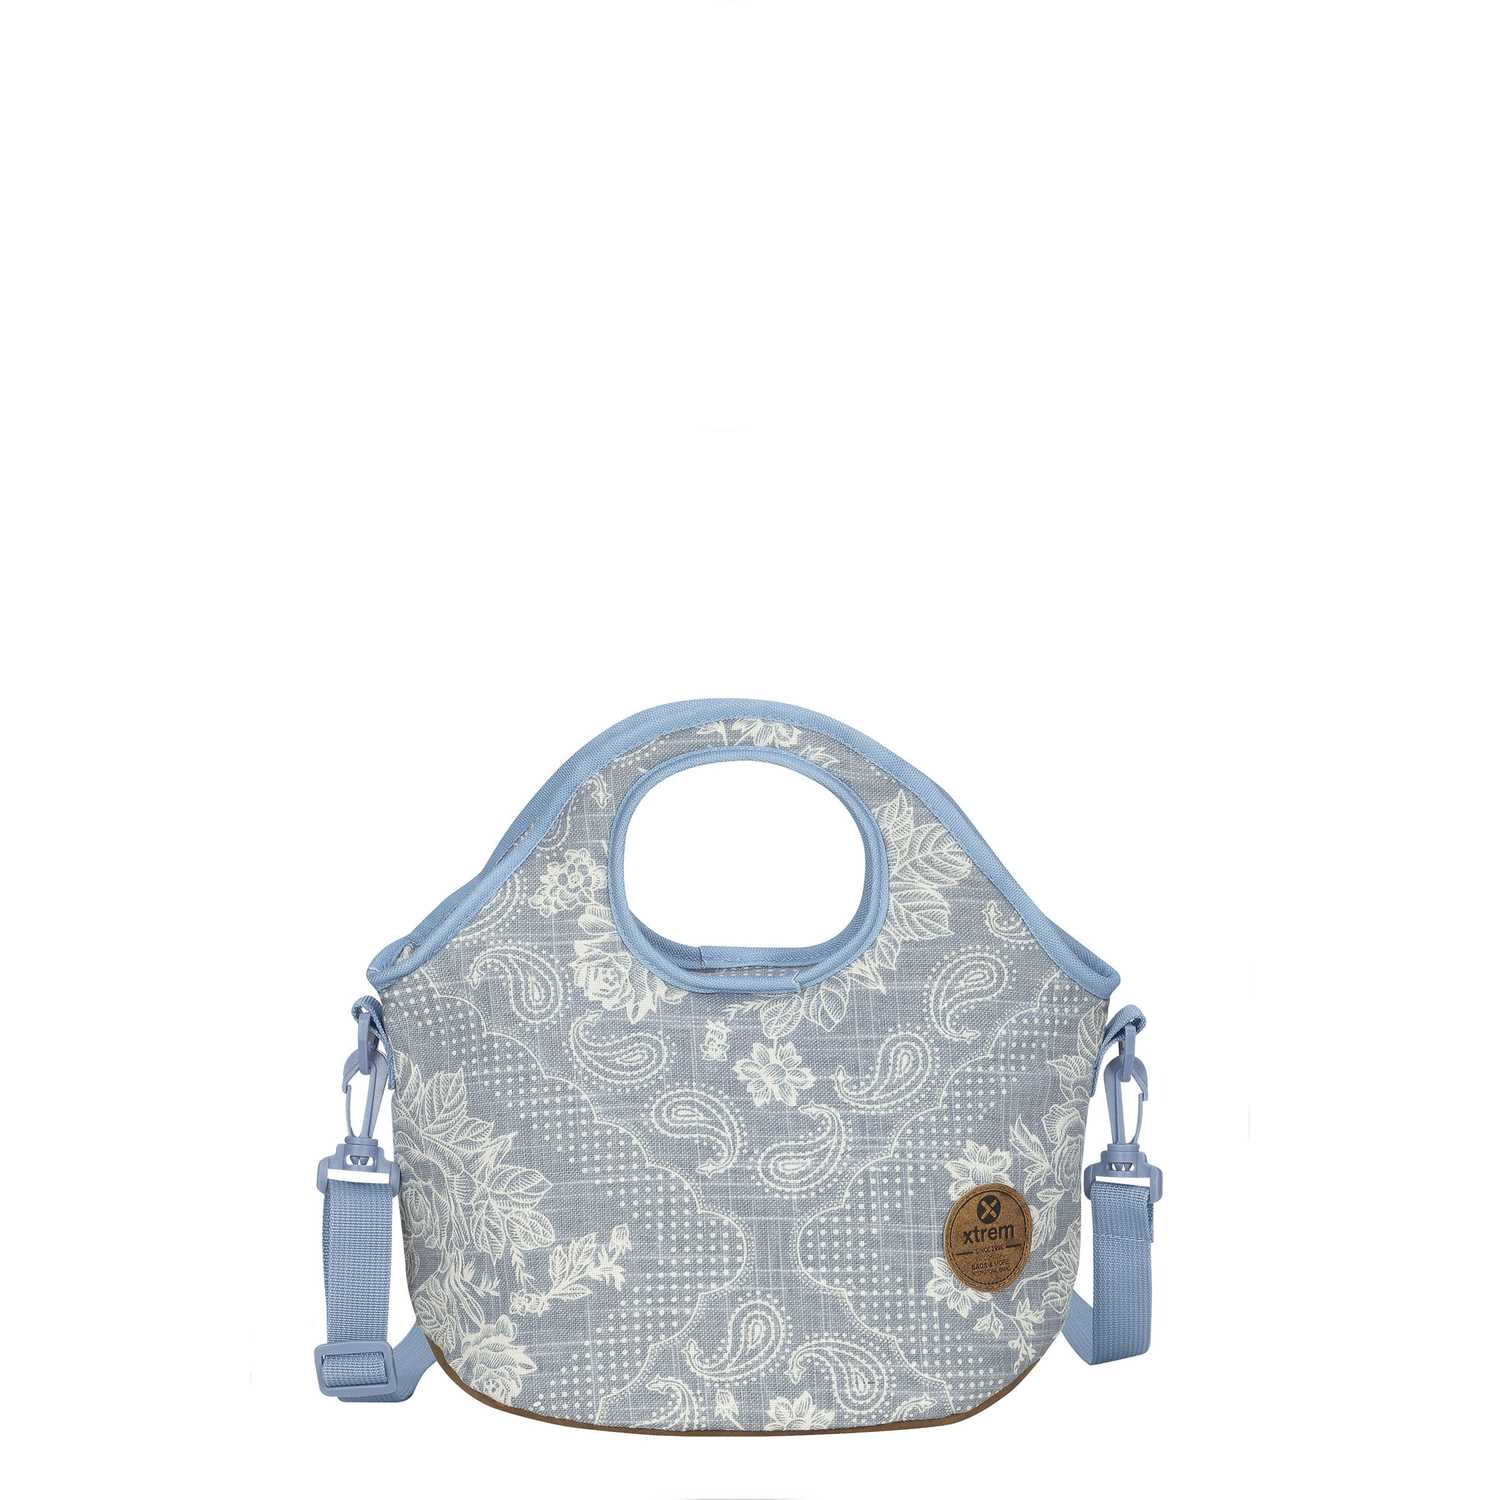 Lonchera de Niña Xtrem Celeste lunch bag romantic neo 845